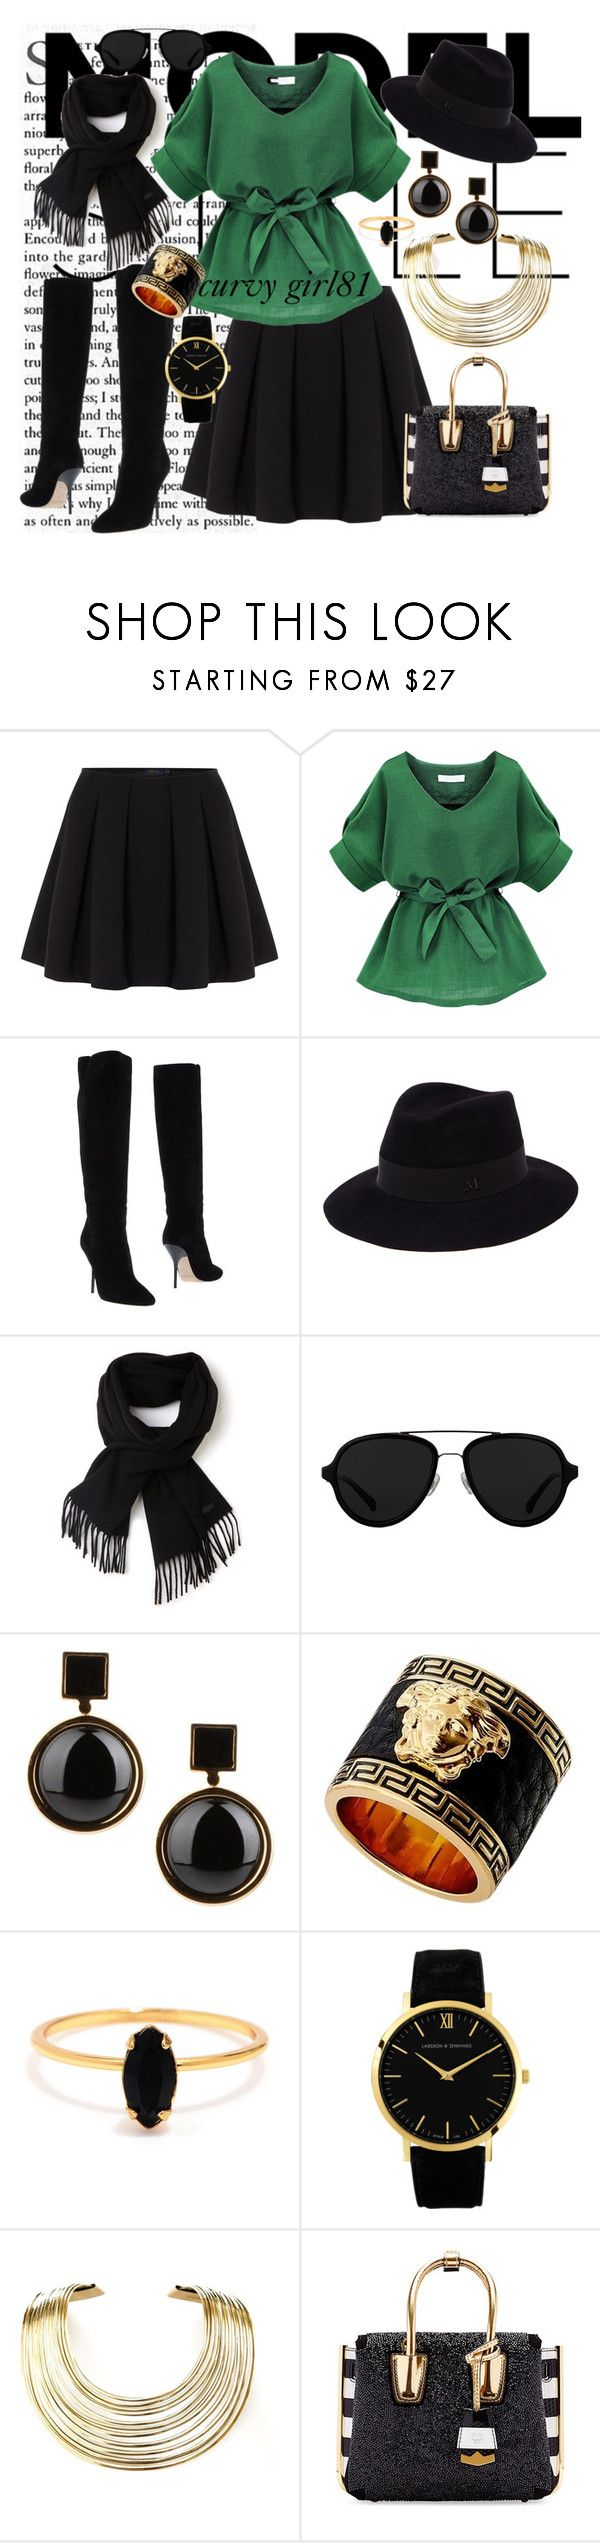 """""""Curvy green"""" by pretty-girl81 on Polyvore featuring moda, Polo Ralph Lauren, Jimmy Choo, Maison Michel, Lacoste, 3.1 Phillip Lim, Marc by Marc Jacobs, Versace, Bing Bang e Larsson & Jennings"""